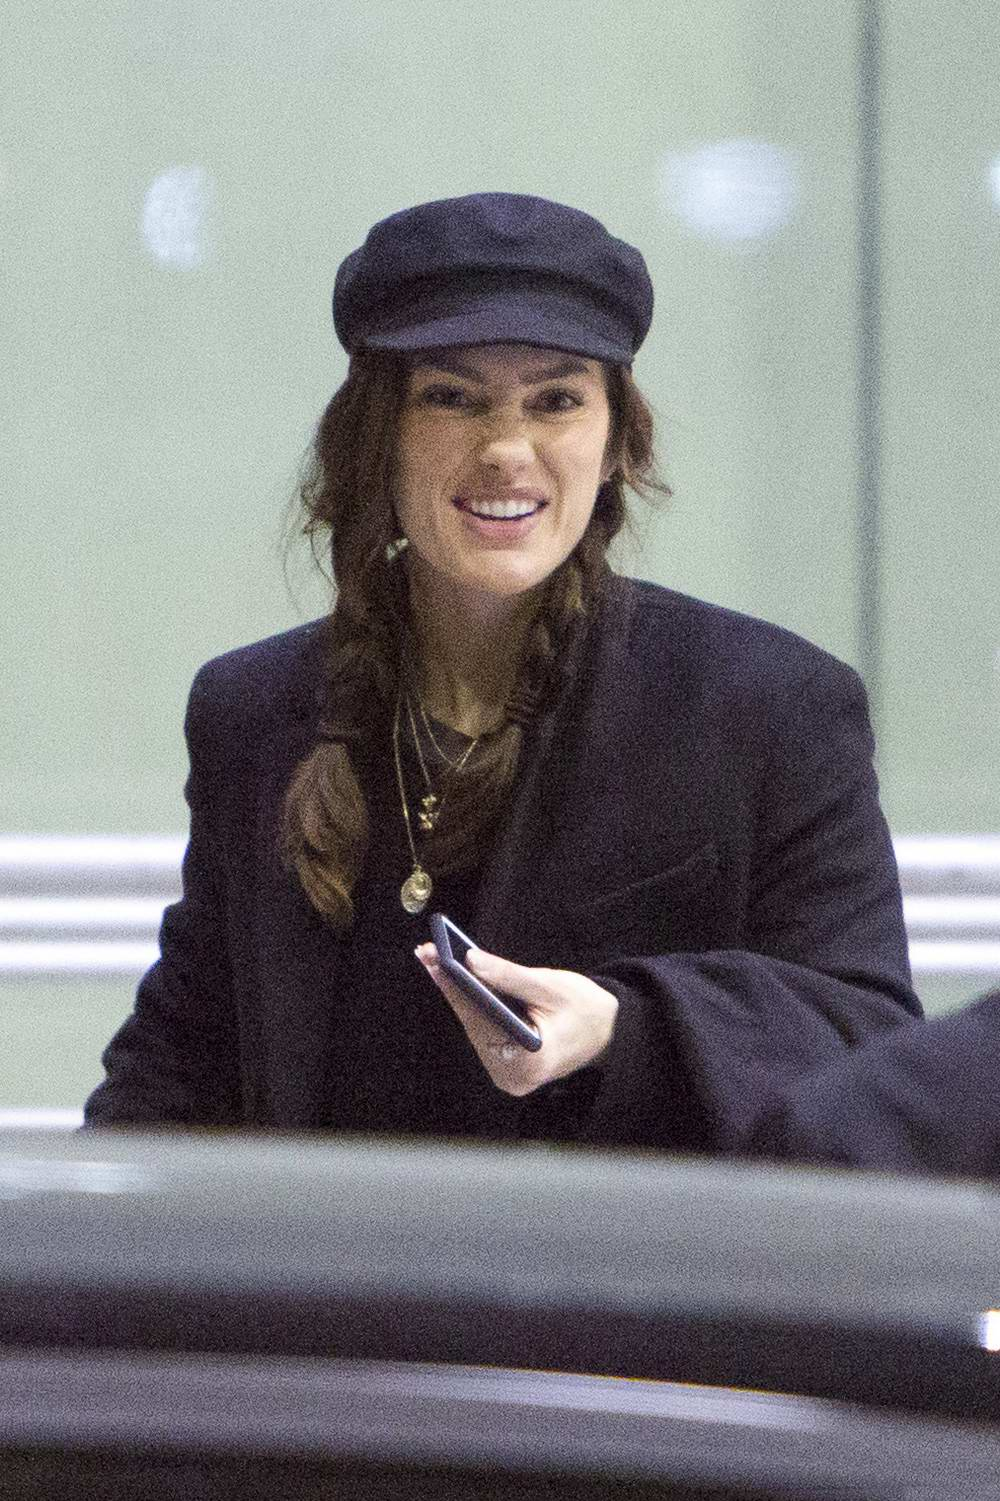 minka kelly spotted at the airport with her dog and ...